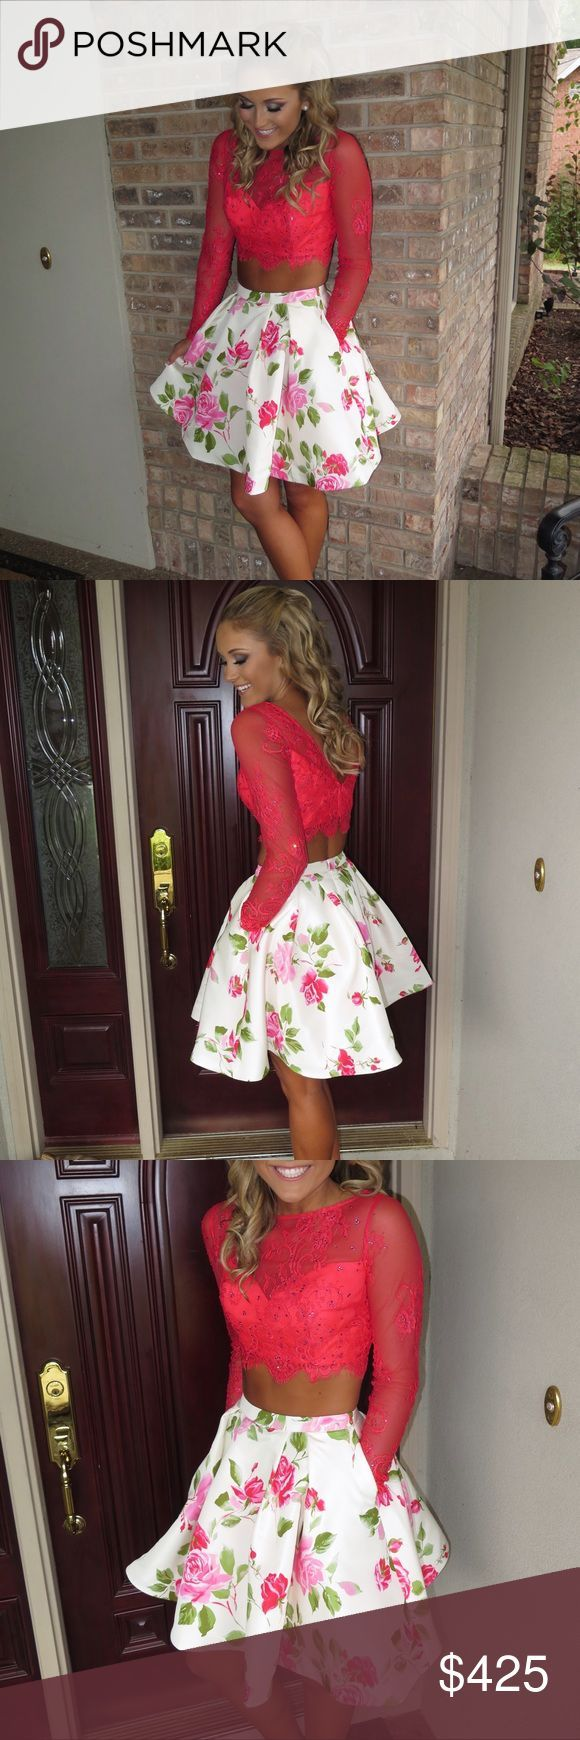 Sherri Hill Homecoming dress Two piece Sherri Hill homecoming dress. Floral bottom w coral/pink long sleeve top. Skirt has pockets. Worn once. Sherri Hill Dresses Prom